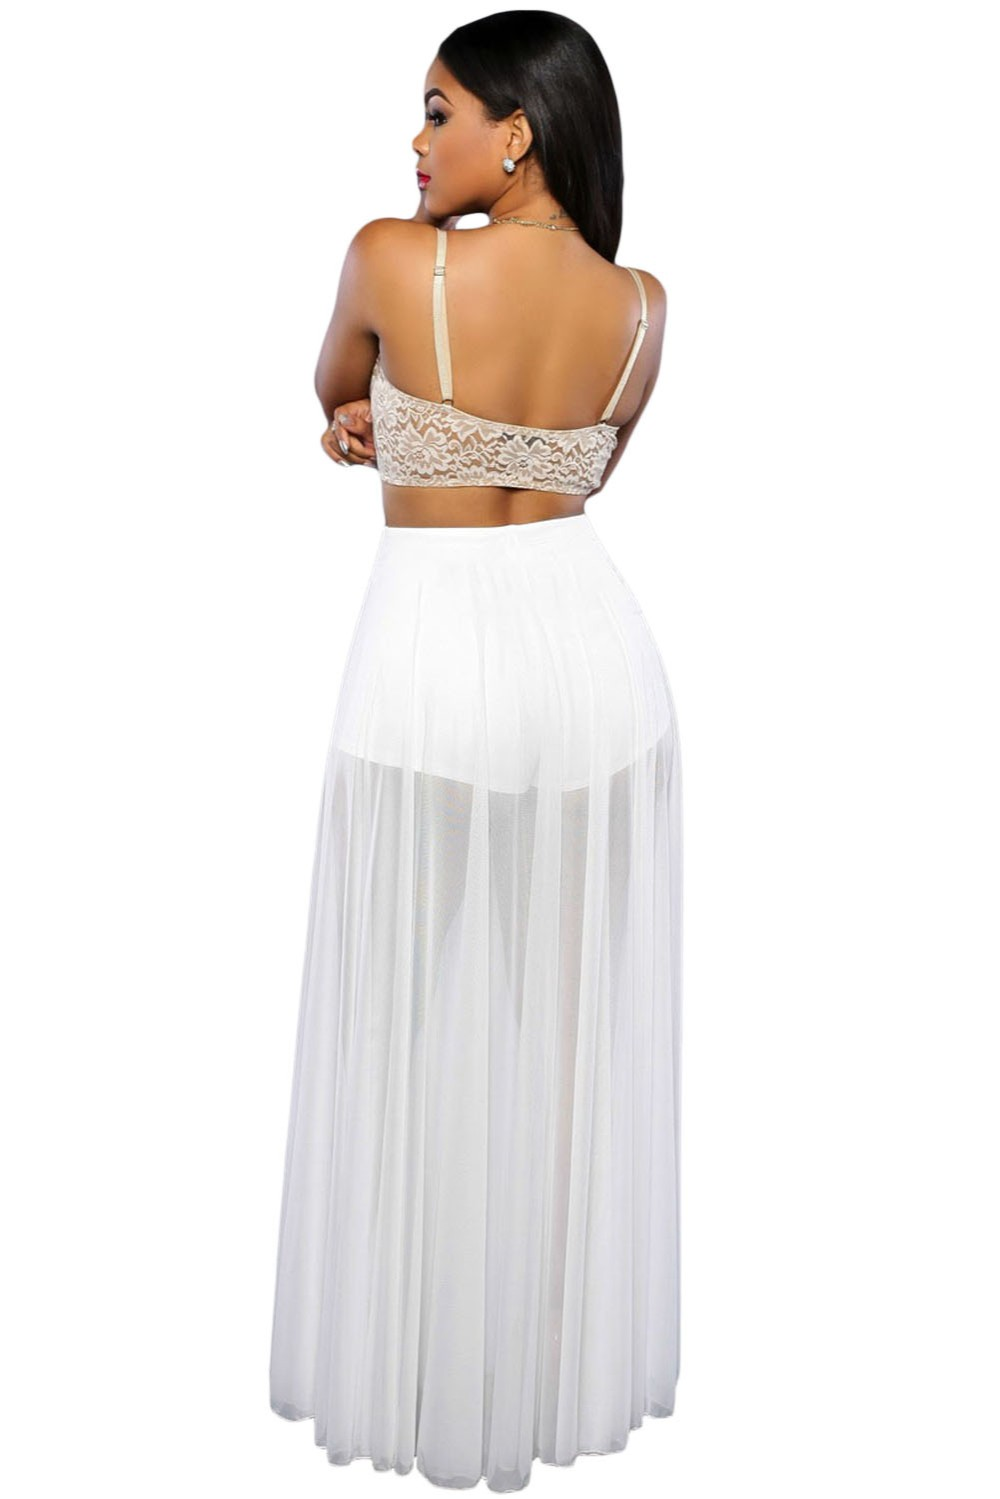 White-Sheer-Slit-Panty-Luxe-Maxi-Skirt-LC65000-1-2